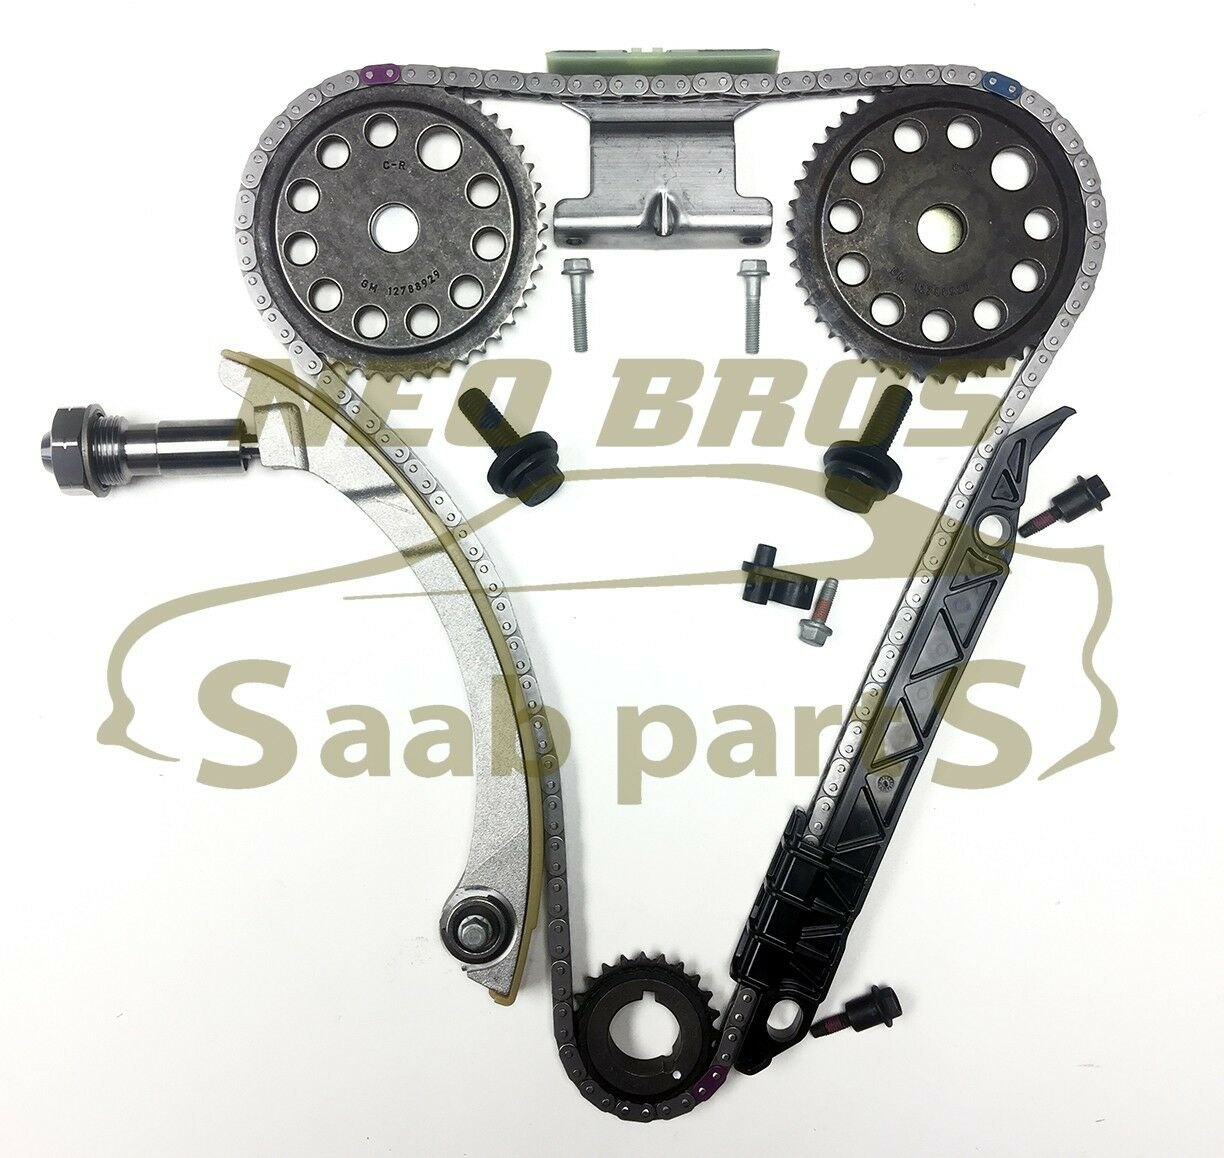 Vauxhall & Opel Z20NET 2.0T Genuine Timing Chain Kit for Saab 9-3 ...